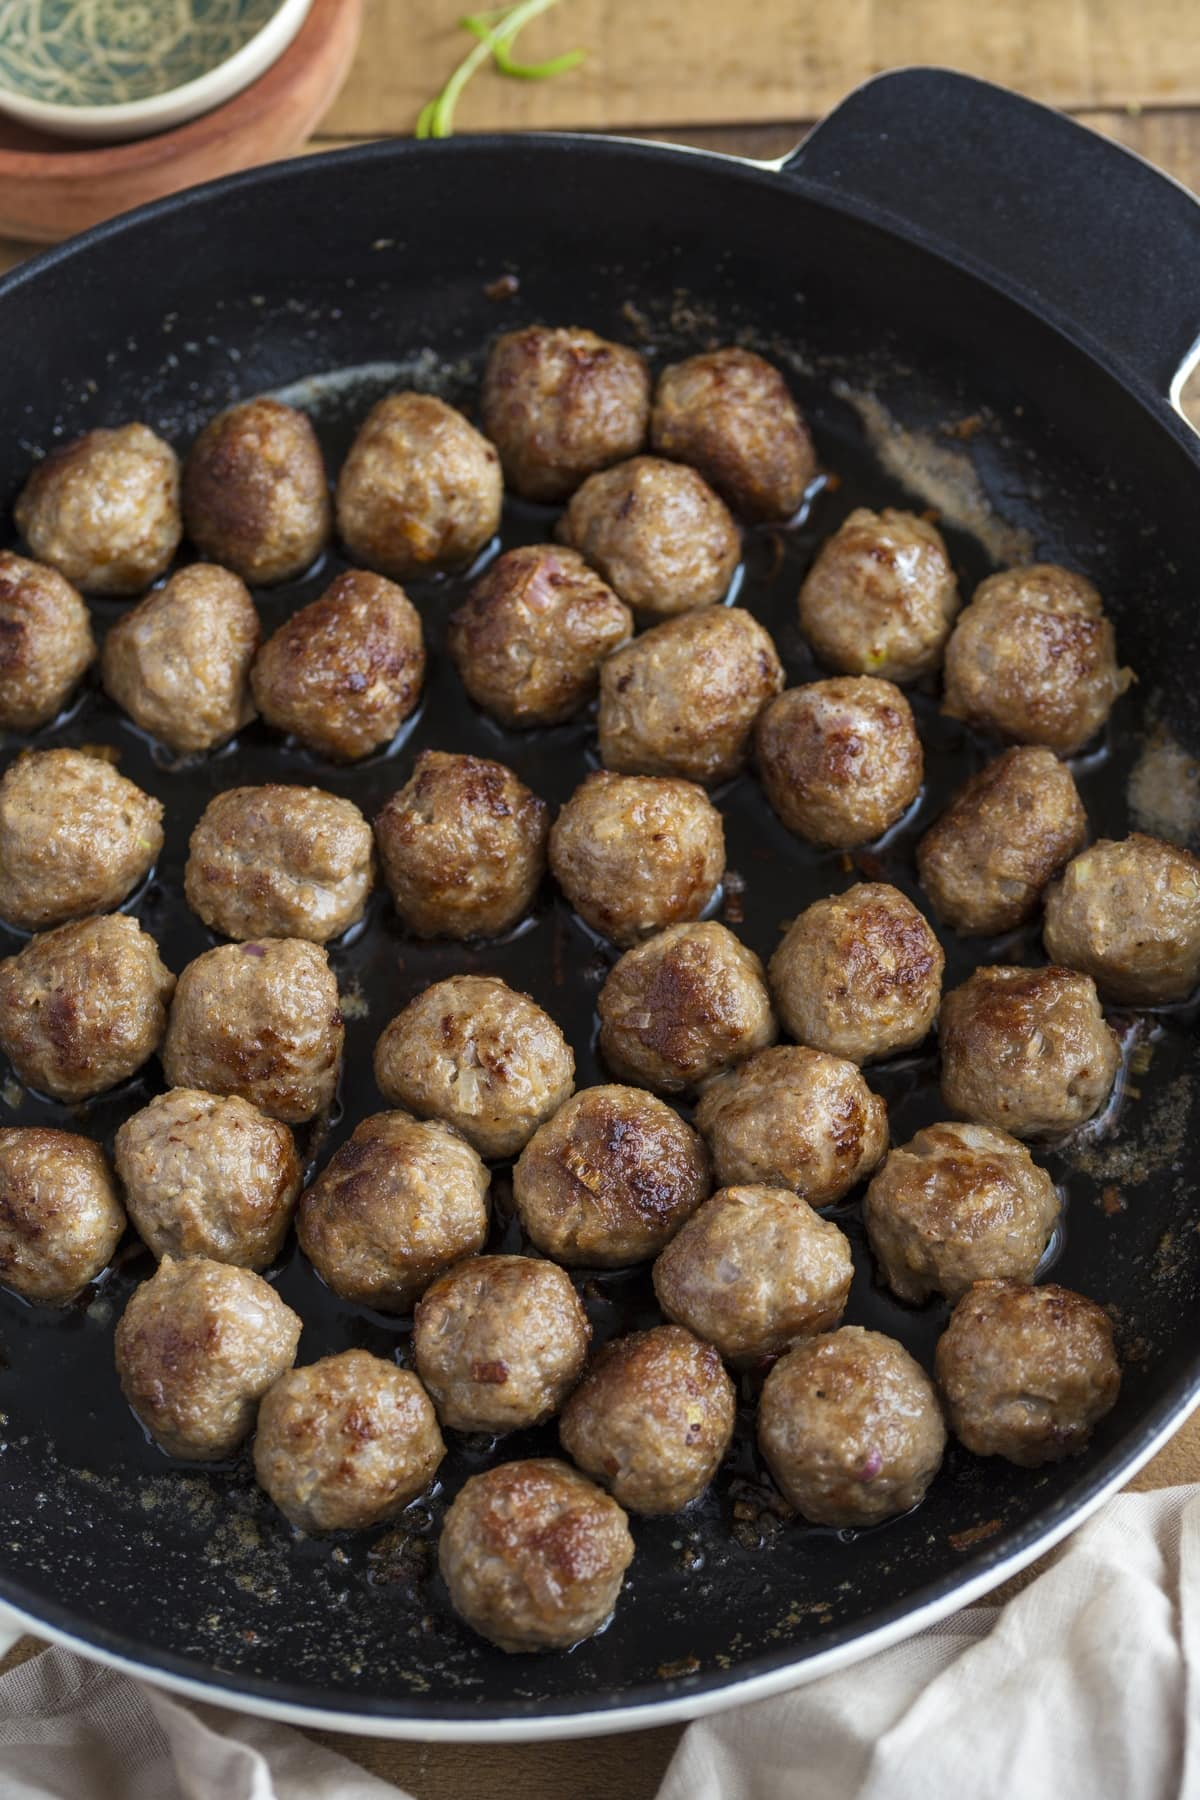 Frying meatballs in a skillet.